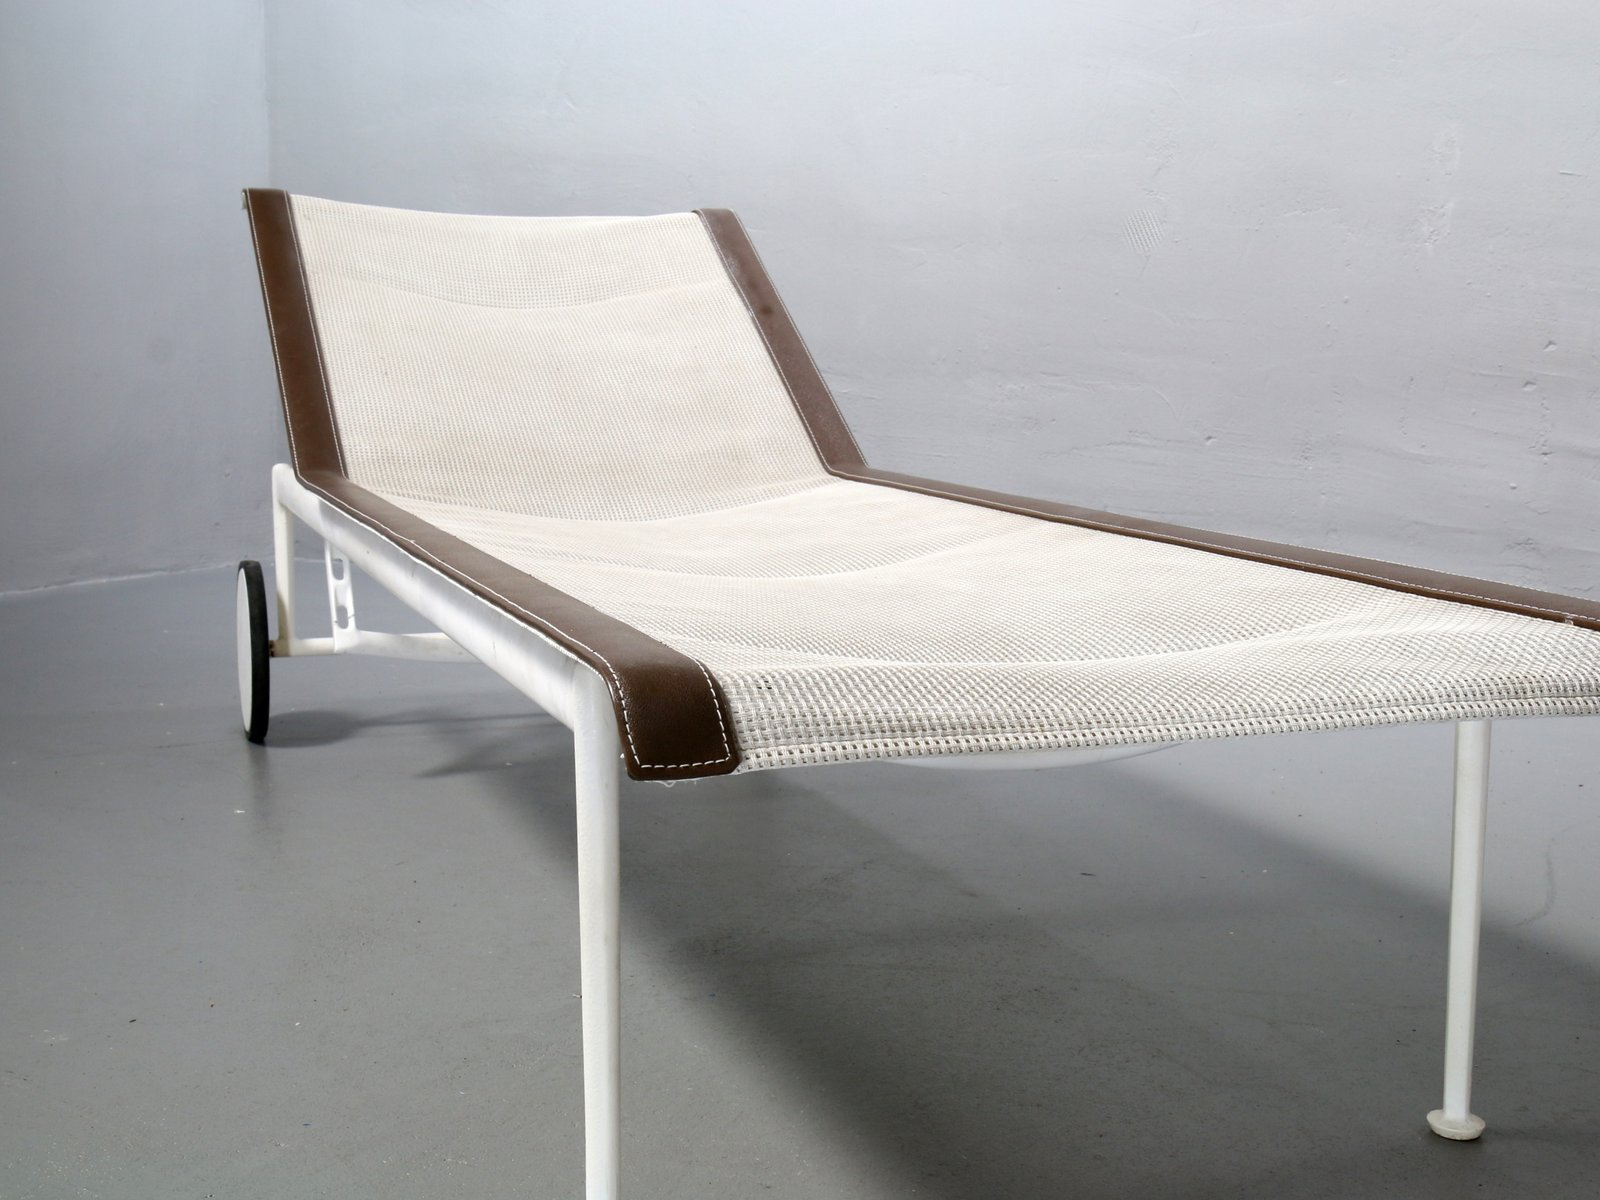 Mid century leisure collection garden lounger by richard schultz for knoll